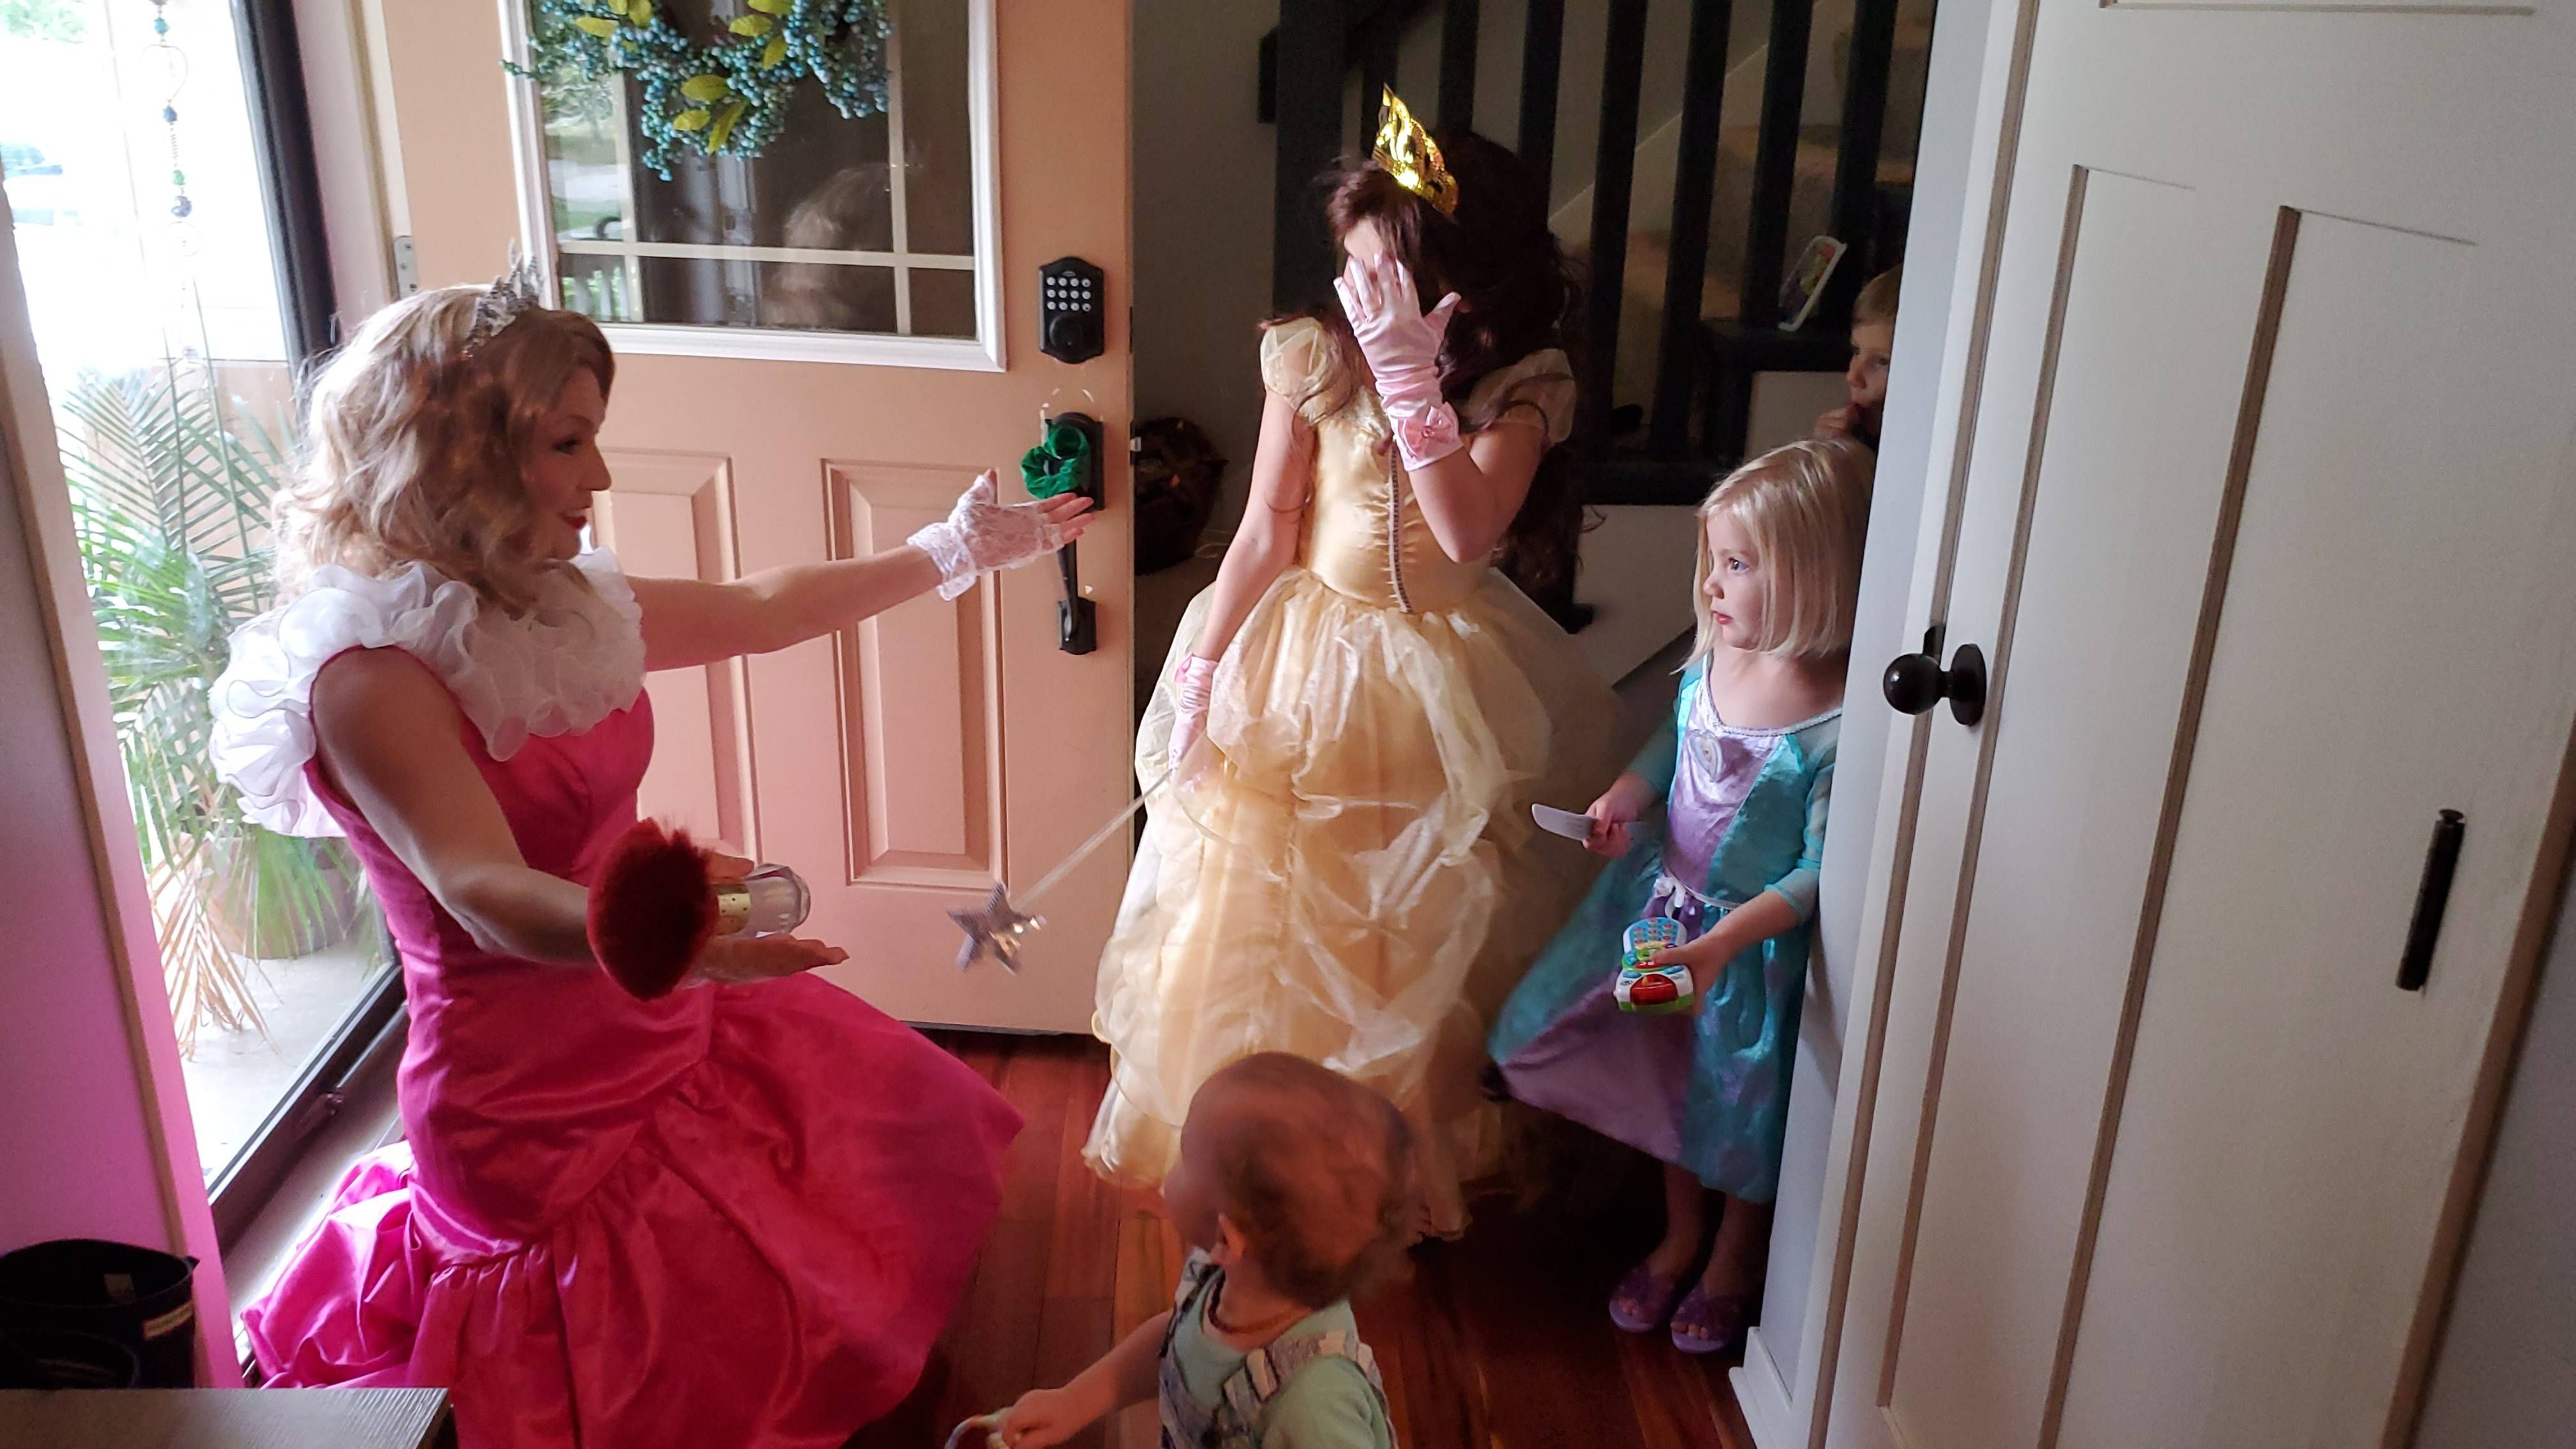 Our daughter pulled a knife on the hired princess at her 3rd birthday party.